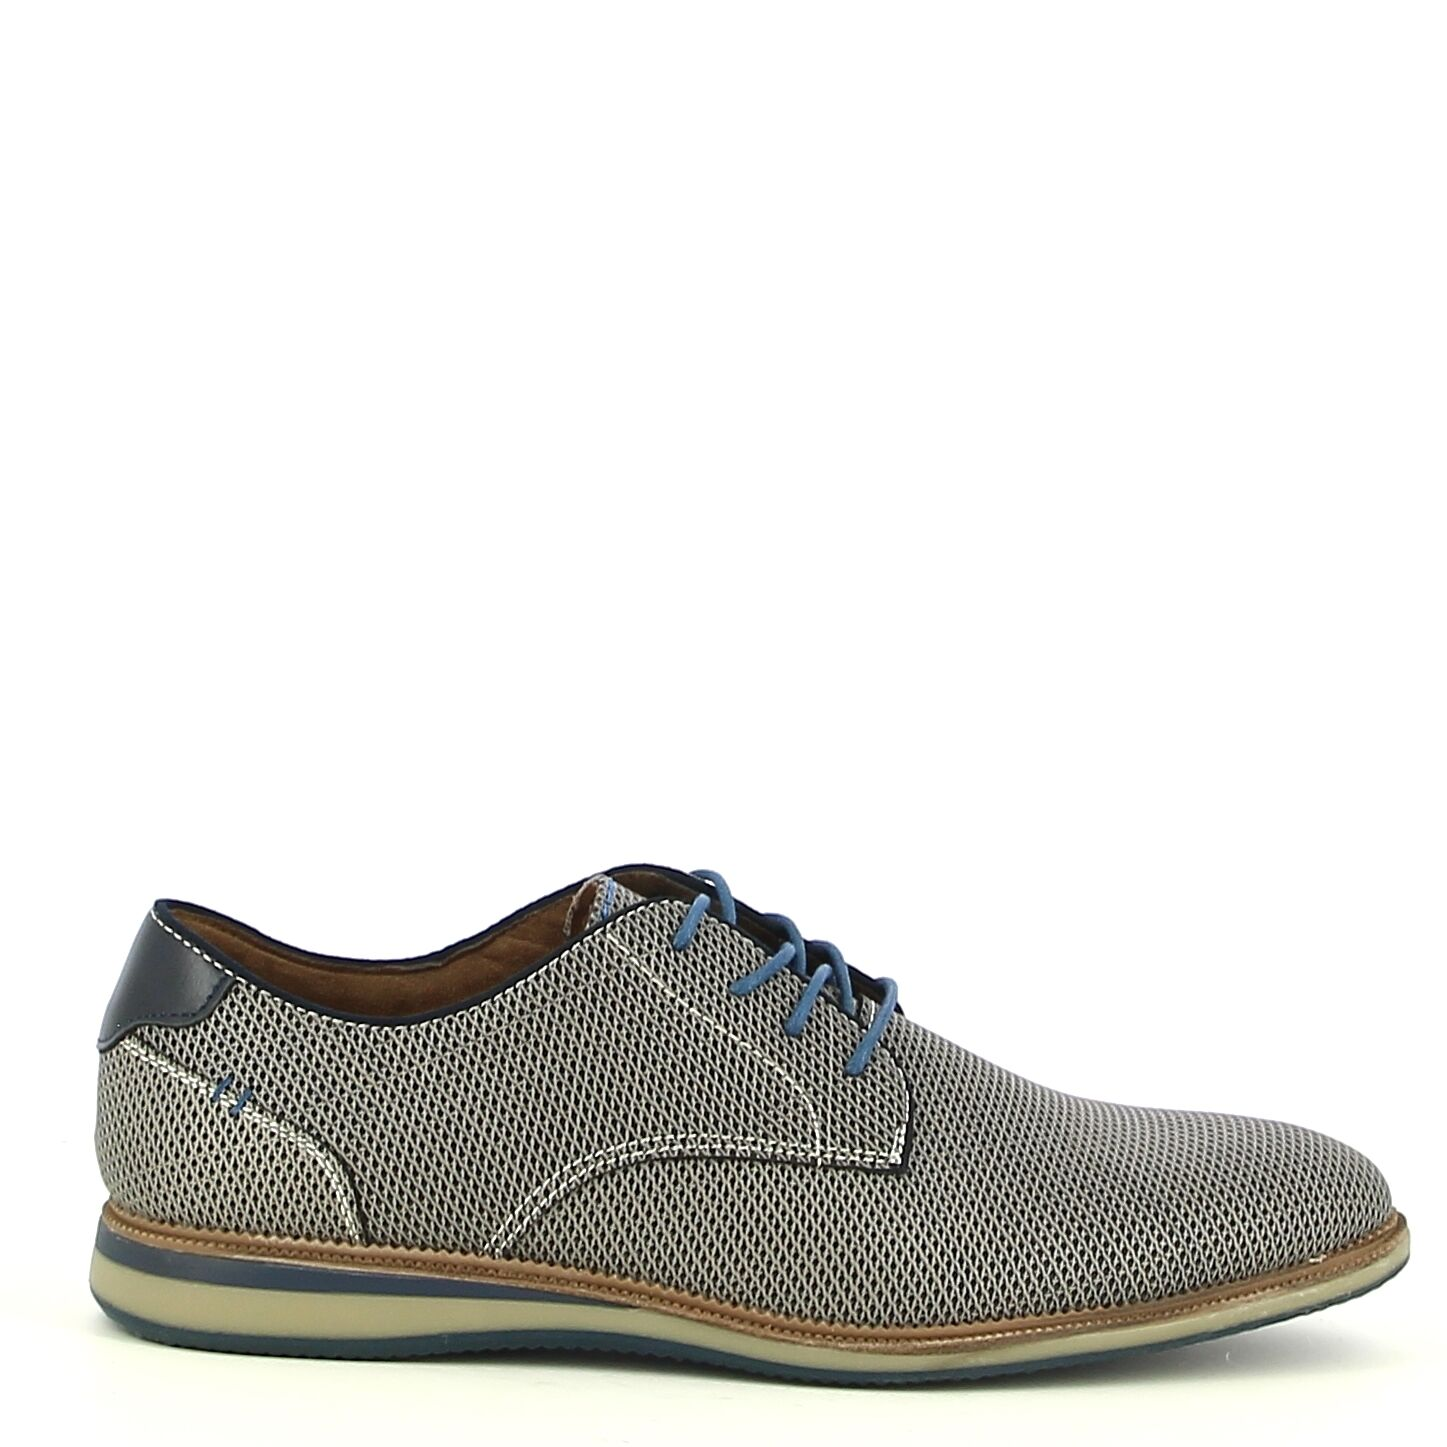 Ken Shoe Fashion - Grijze veterschoen